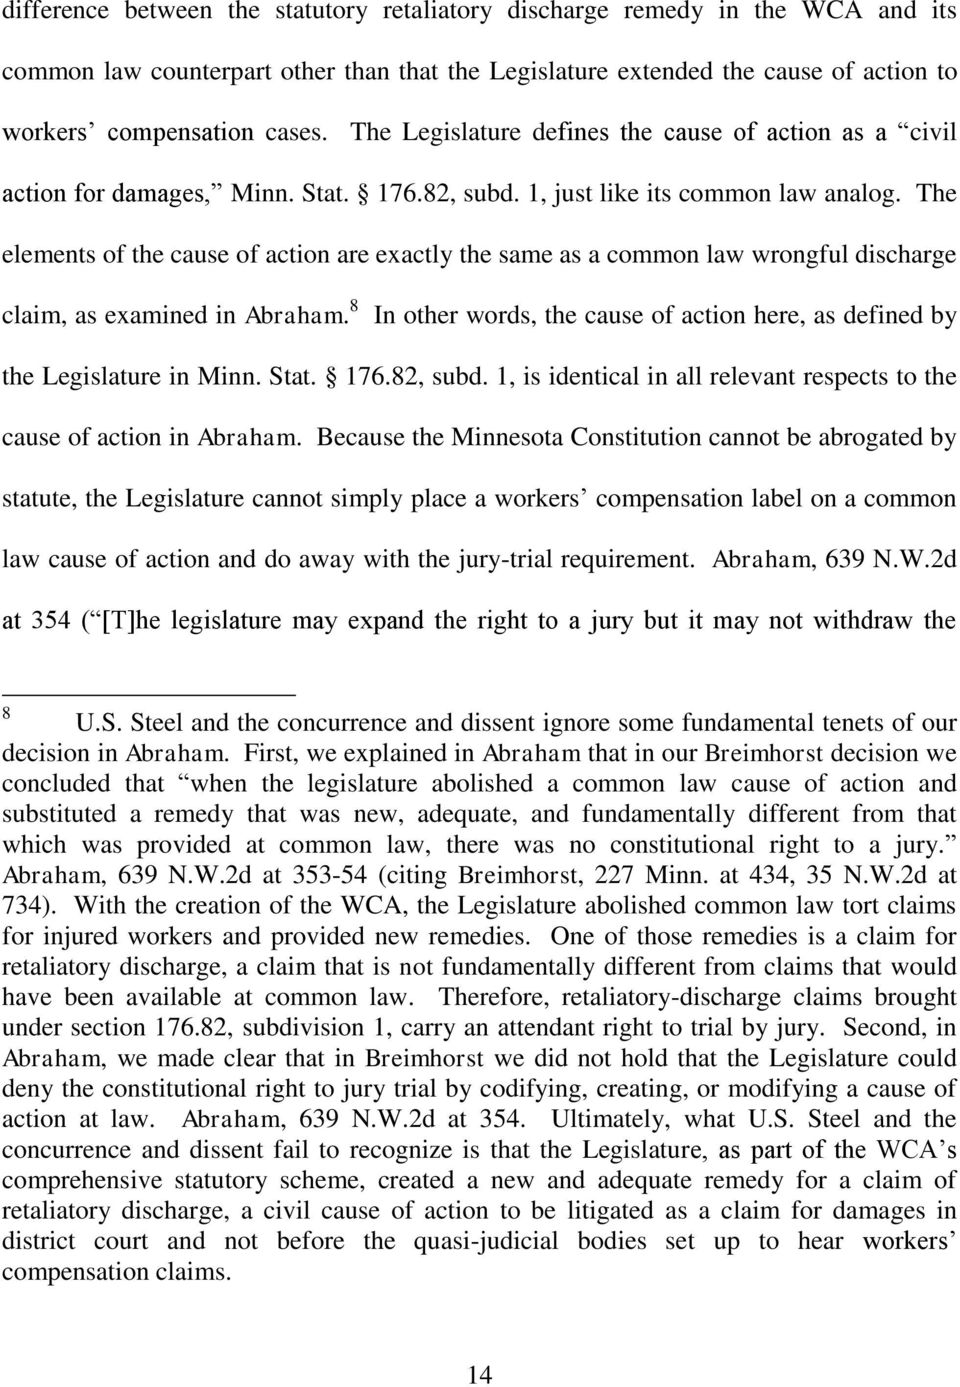 The elements of the cause of action are exactly the same as a common law wrongful discharge claim, as examined in Abraham.